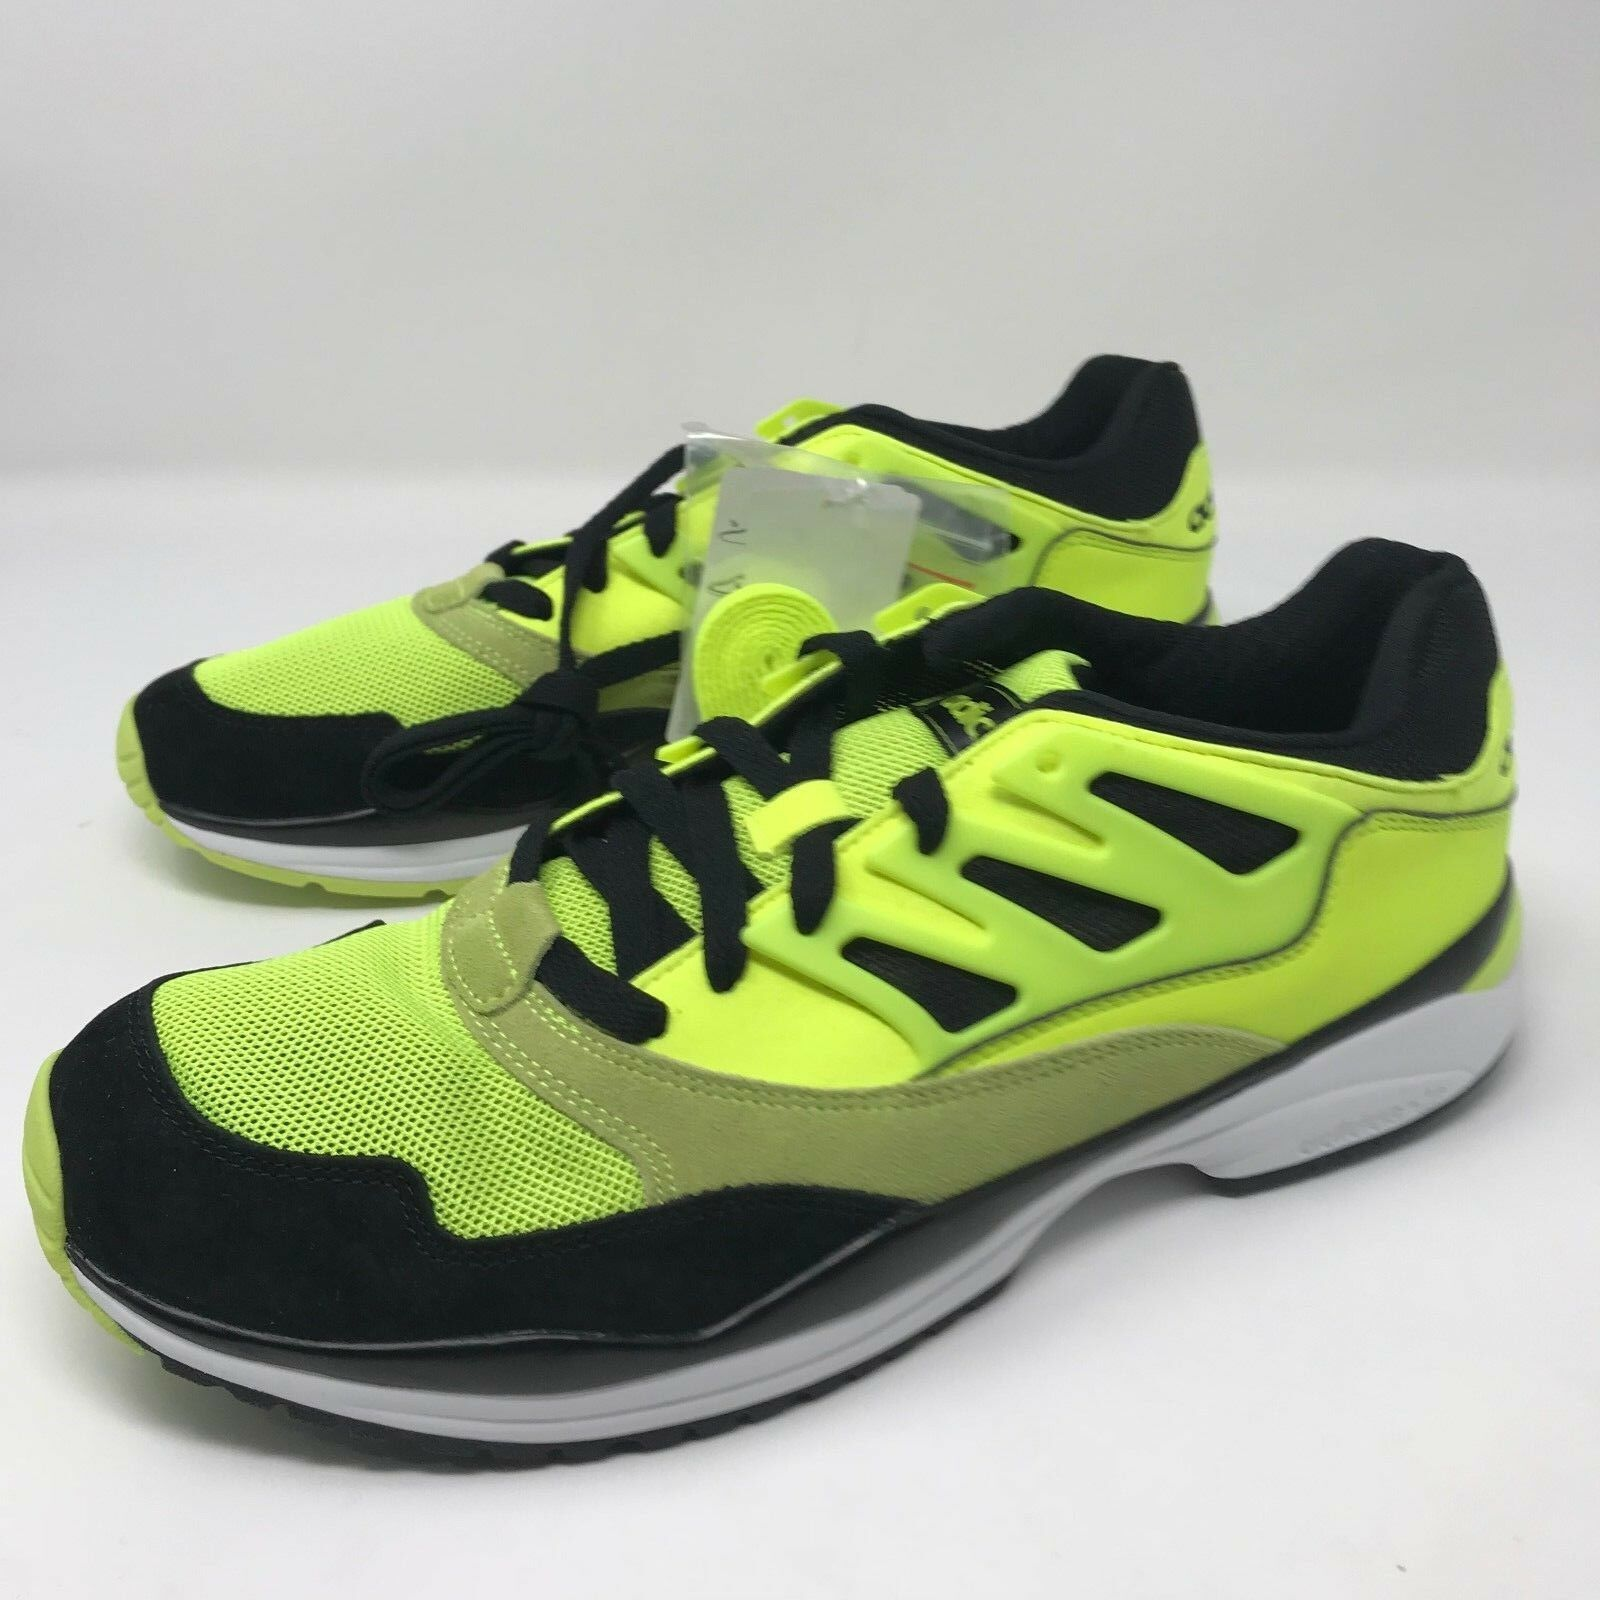 New Men Adidas Torsion Allegra X Q20344 US size 10.5 New shoes for men and women, limited time discount